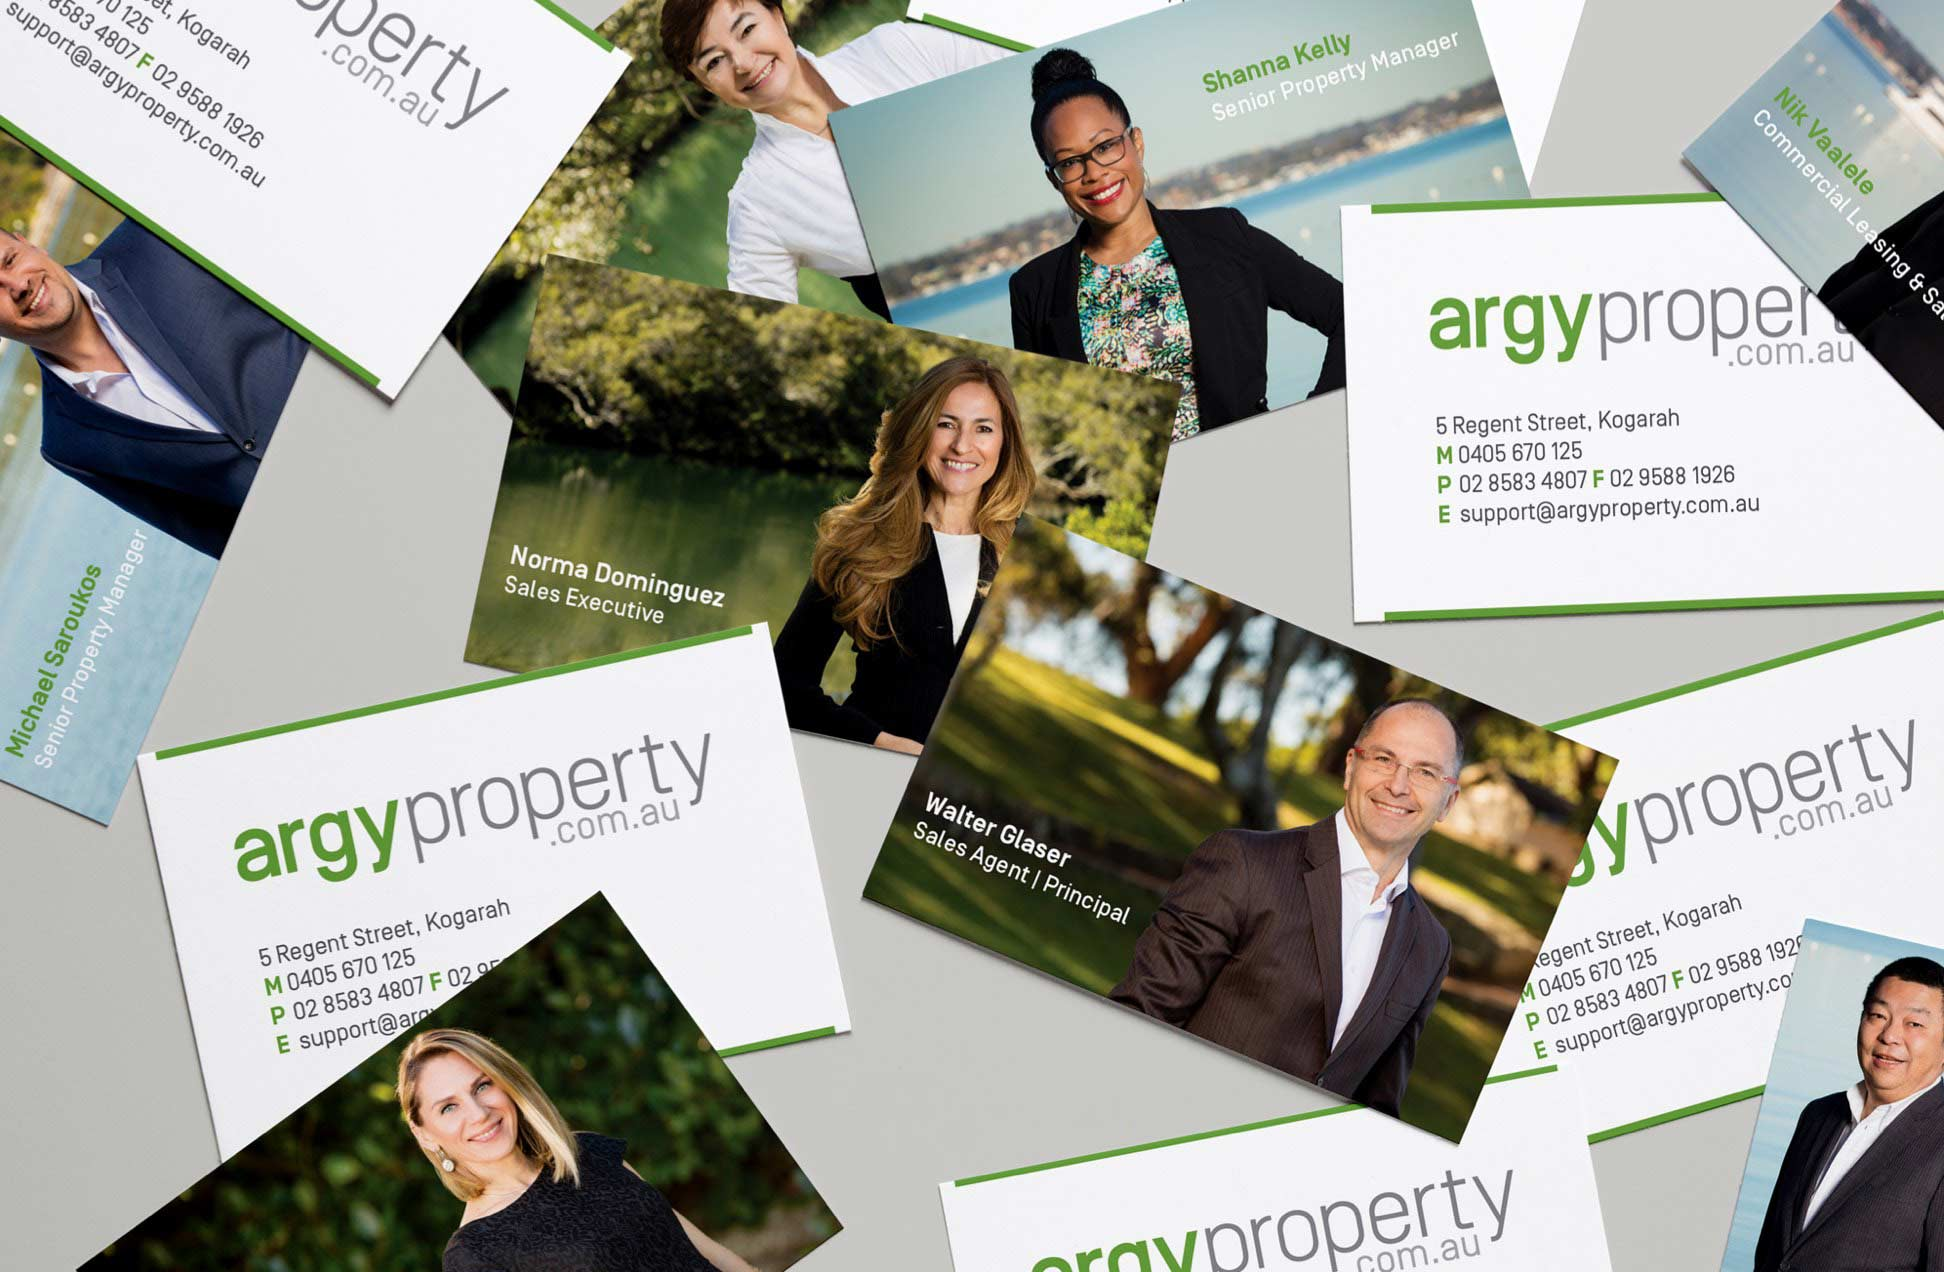 Argy Property business cards